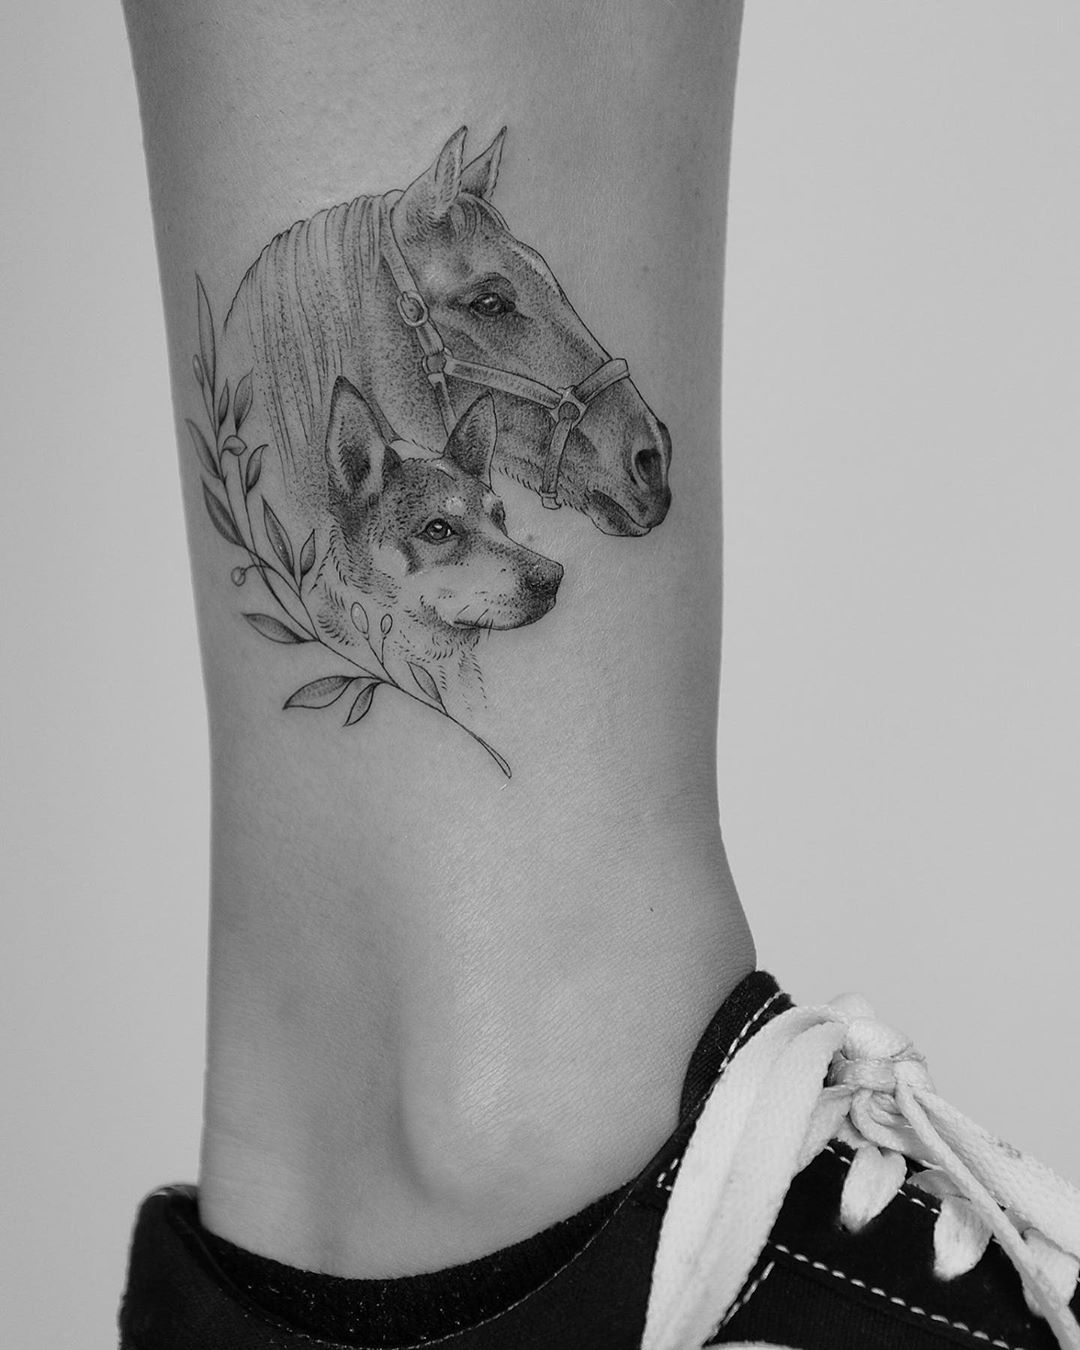 46+ Best Small horse related tattoos image ideas